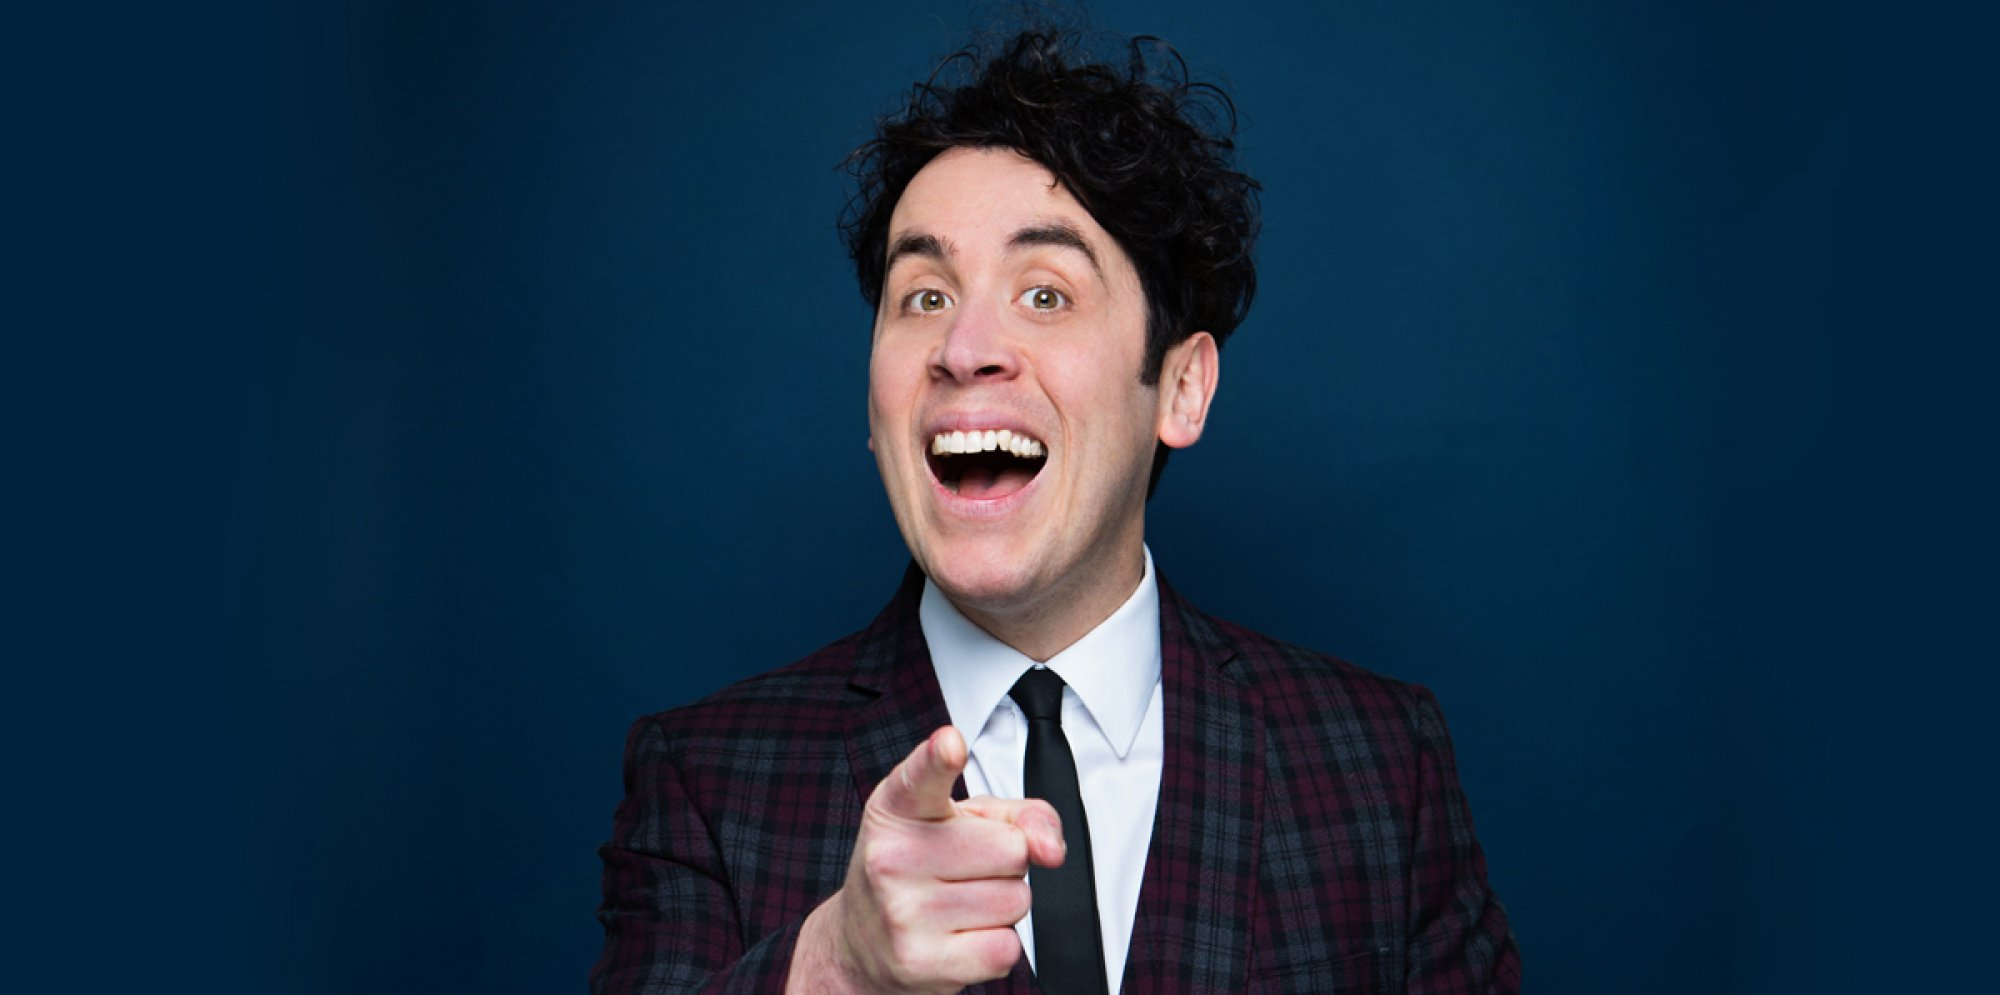 Pete Firman smiling and pointing at the camera in a